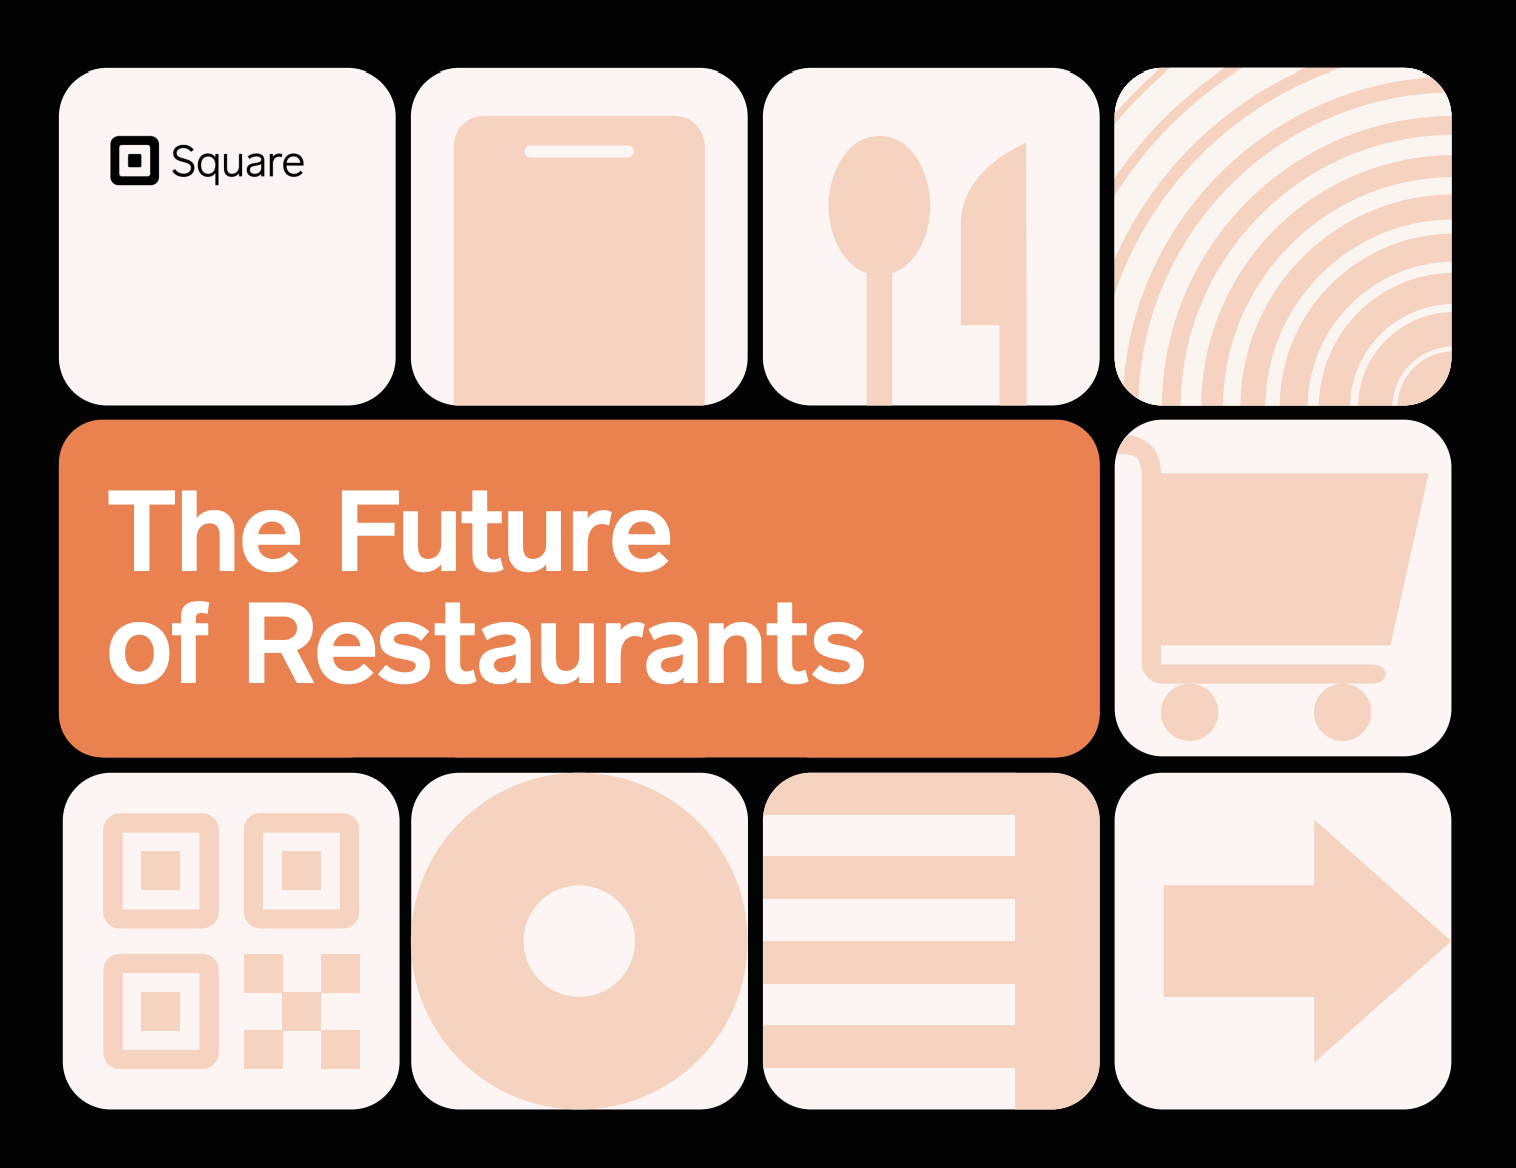 the future of restaurants by square